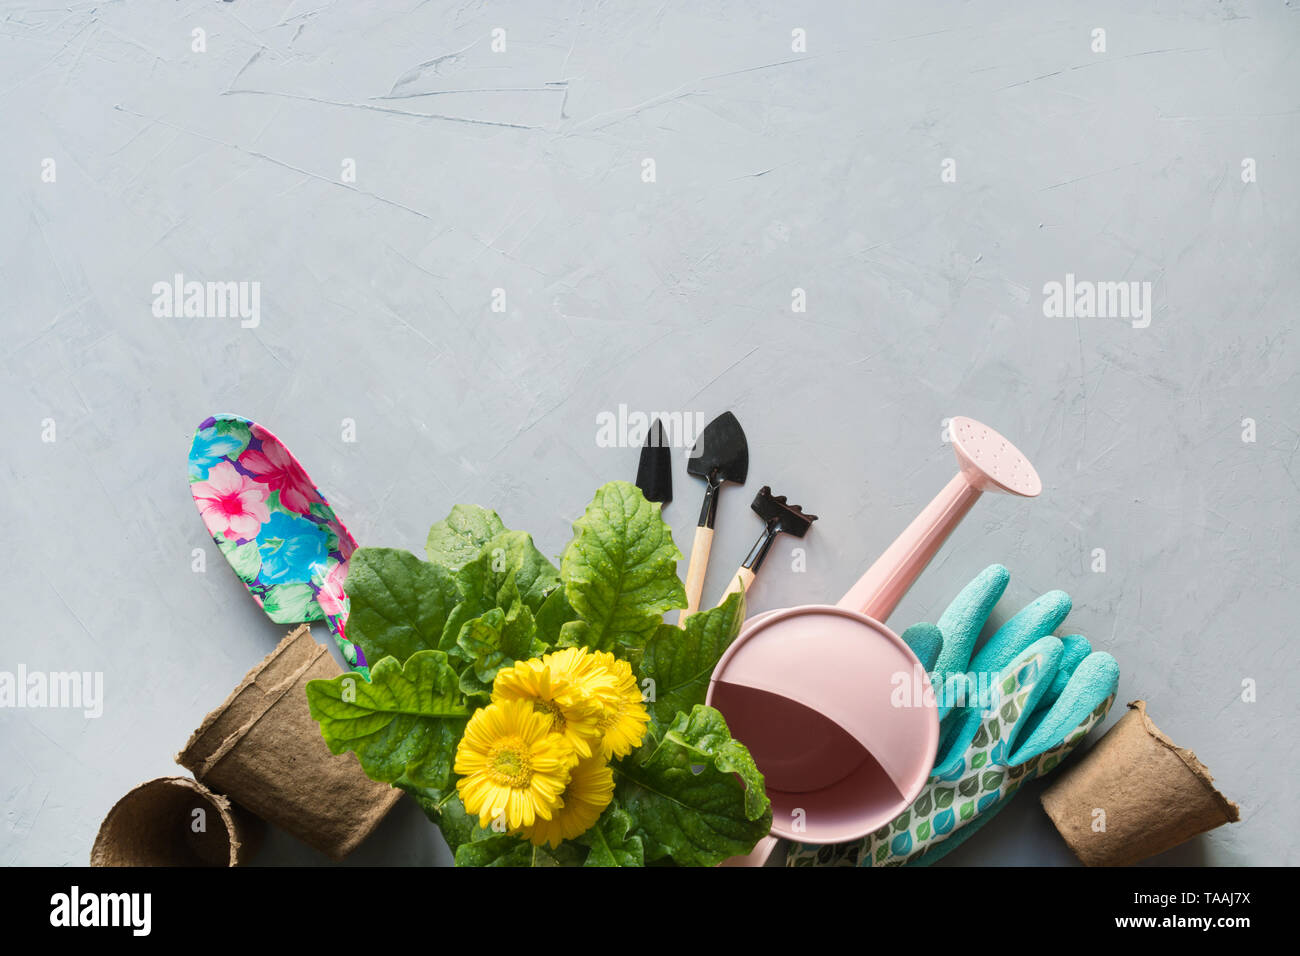 Gardening background with yellow gerbera, tolls and garden flowers plant on gray concrete background. Top view, place for text. - Stock Image